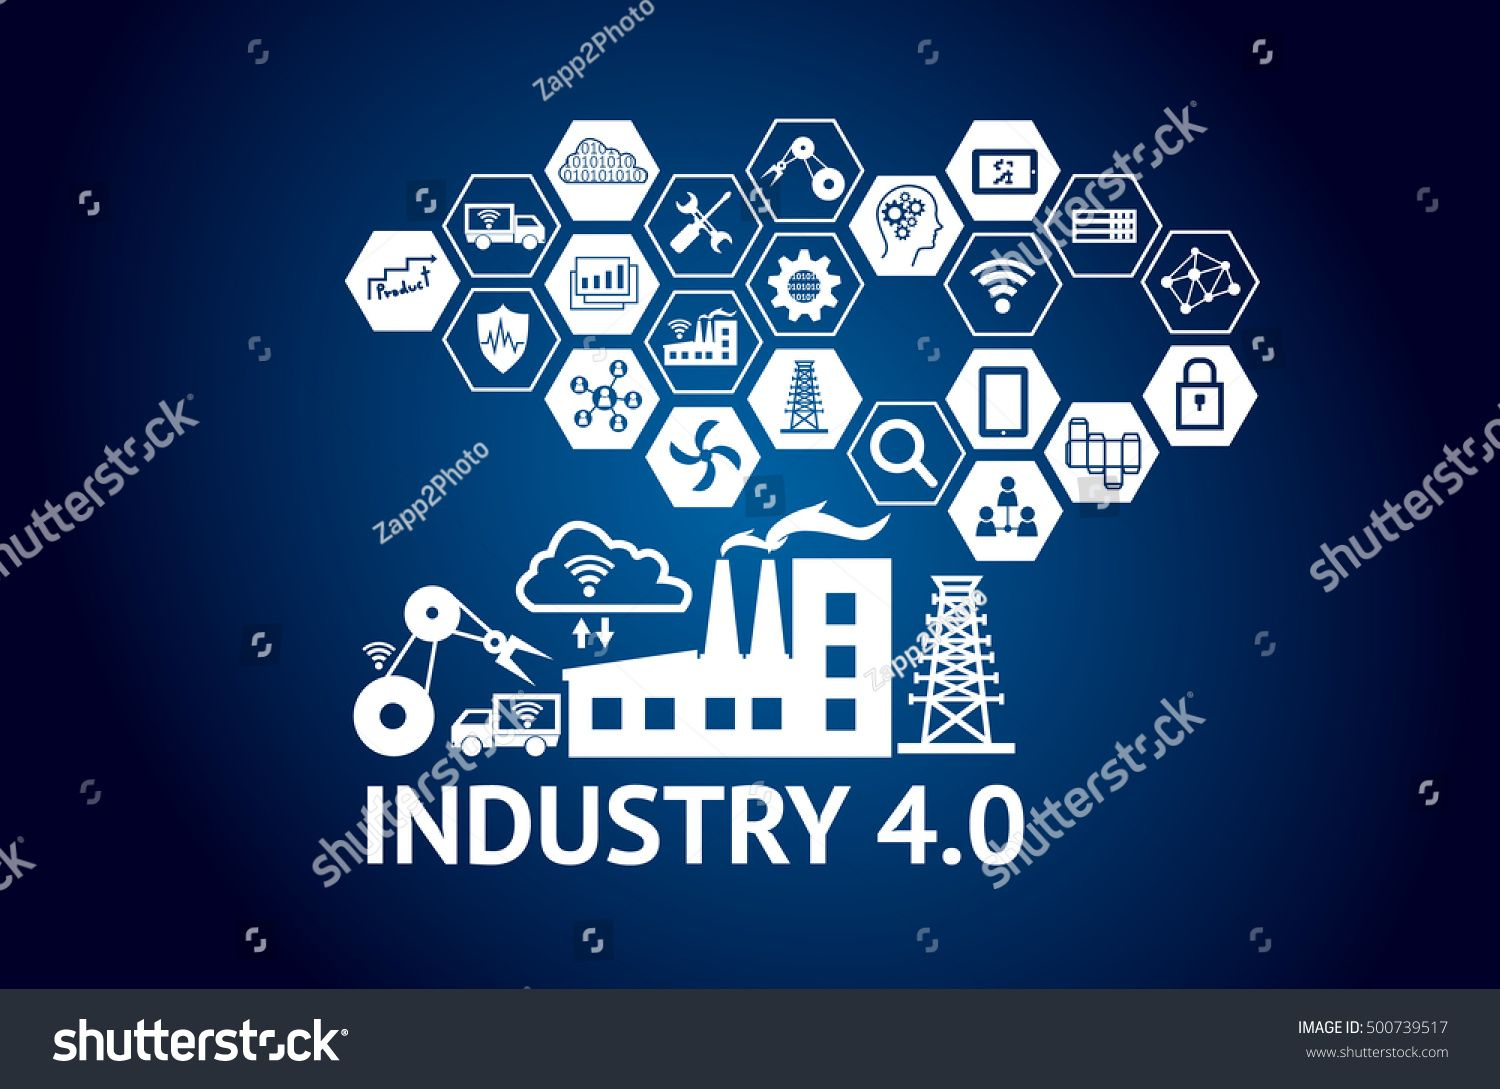 Industrial 4 0 Cyber Physical Systems Concept Icon Of Industry 4 0 Internet Of Things Net Social Media Design Graphics Cyber Physical System 3d Illustration